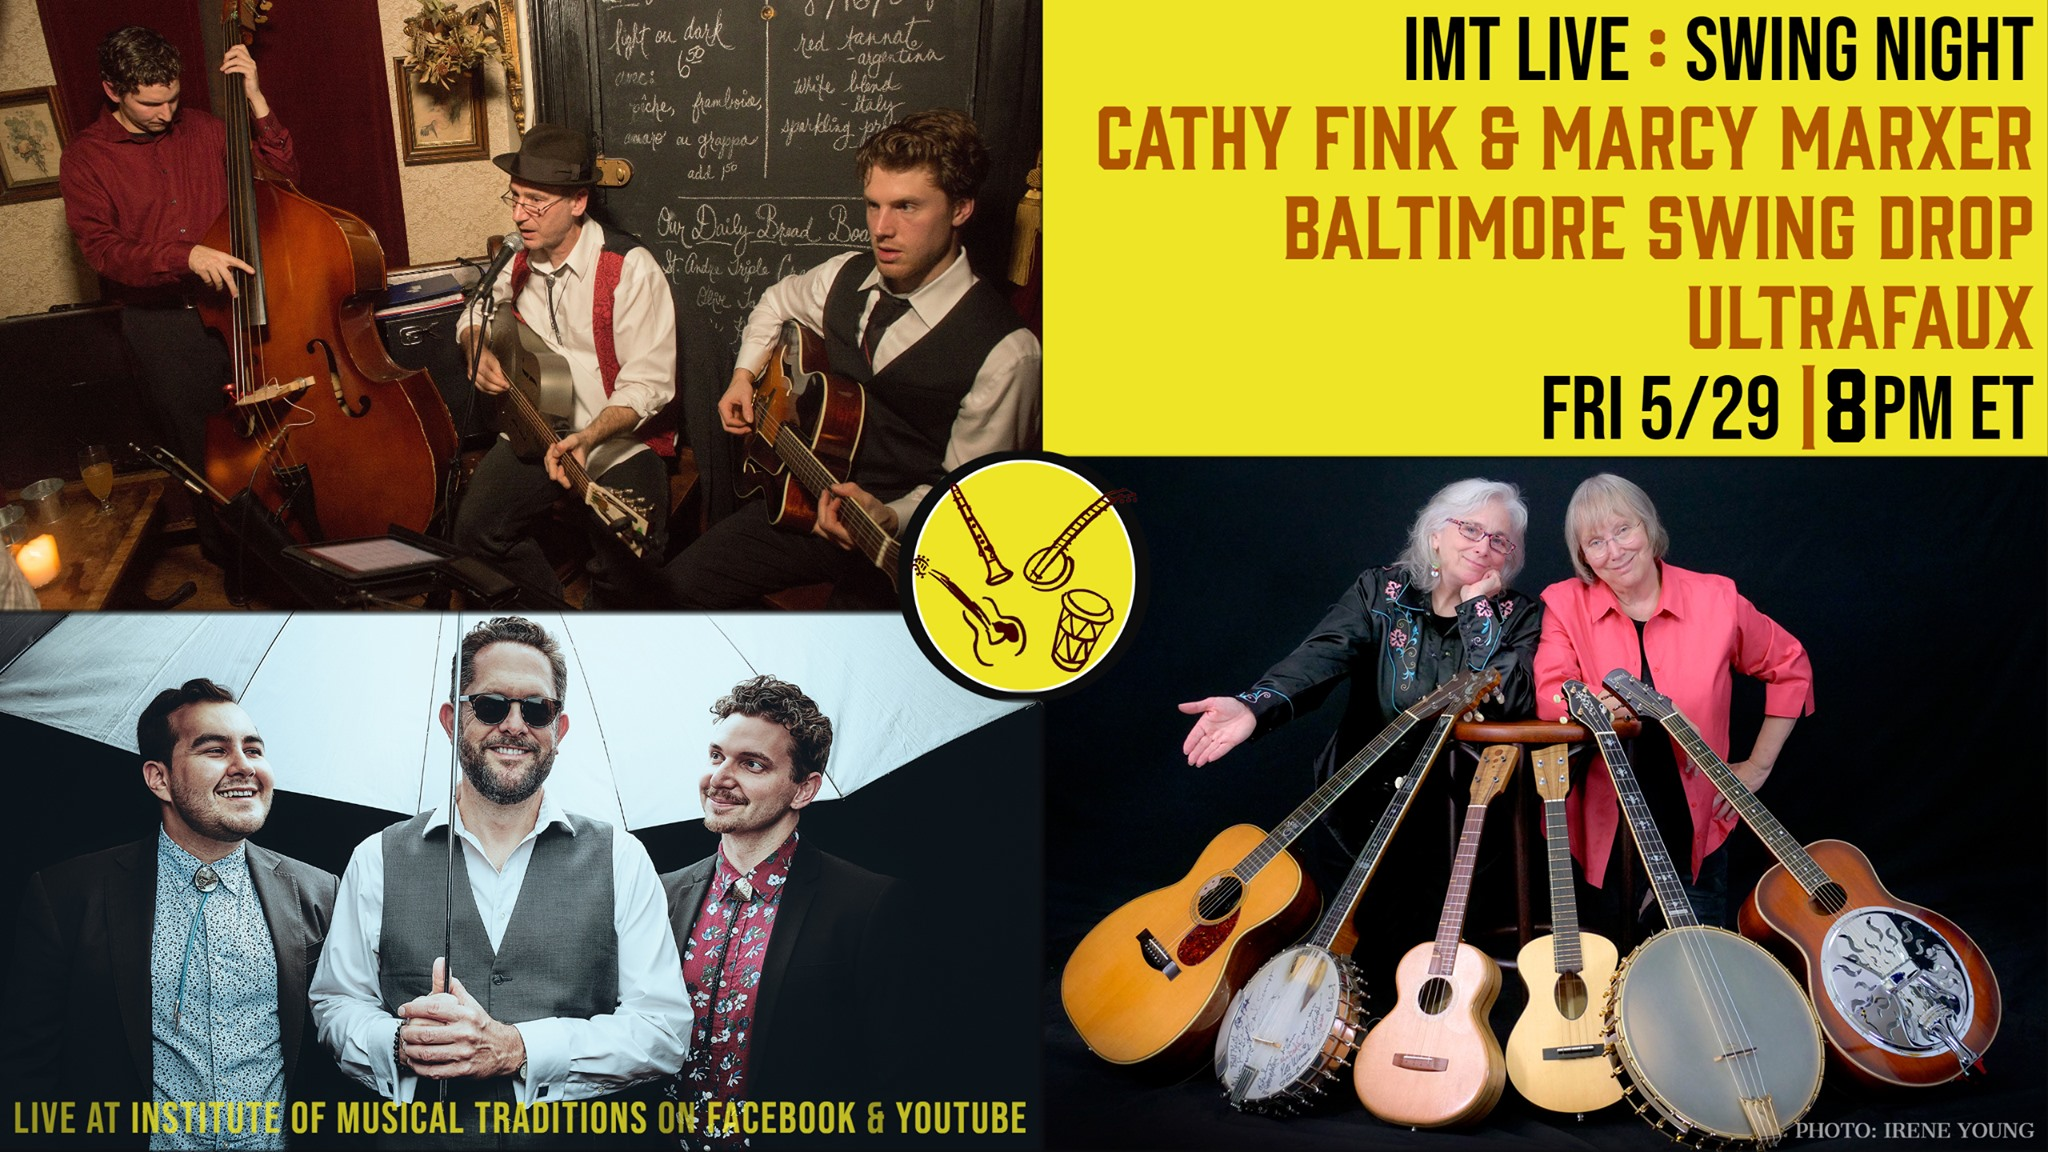 IMT Live: Cathy Fink & Marcy Marxer, Ultrafaux & Baltimore Swing Drop